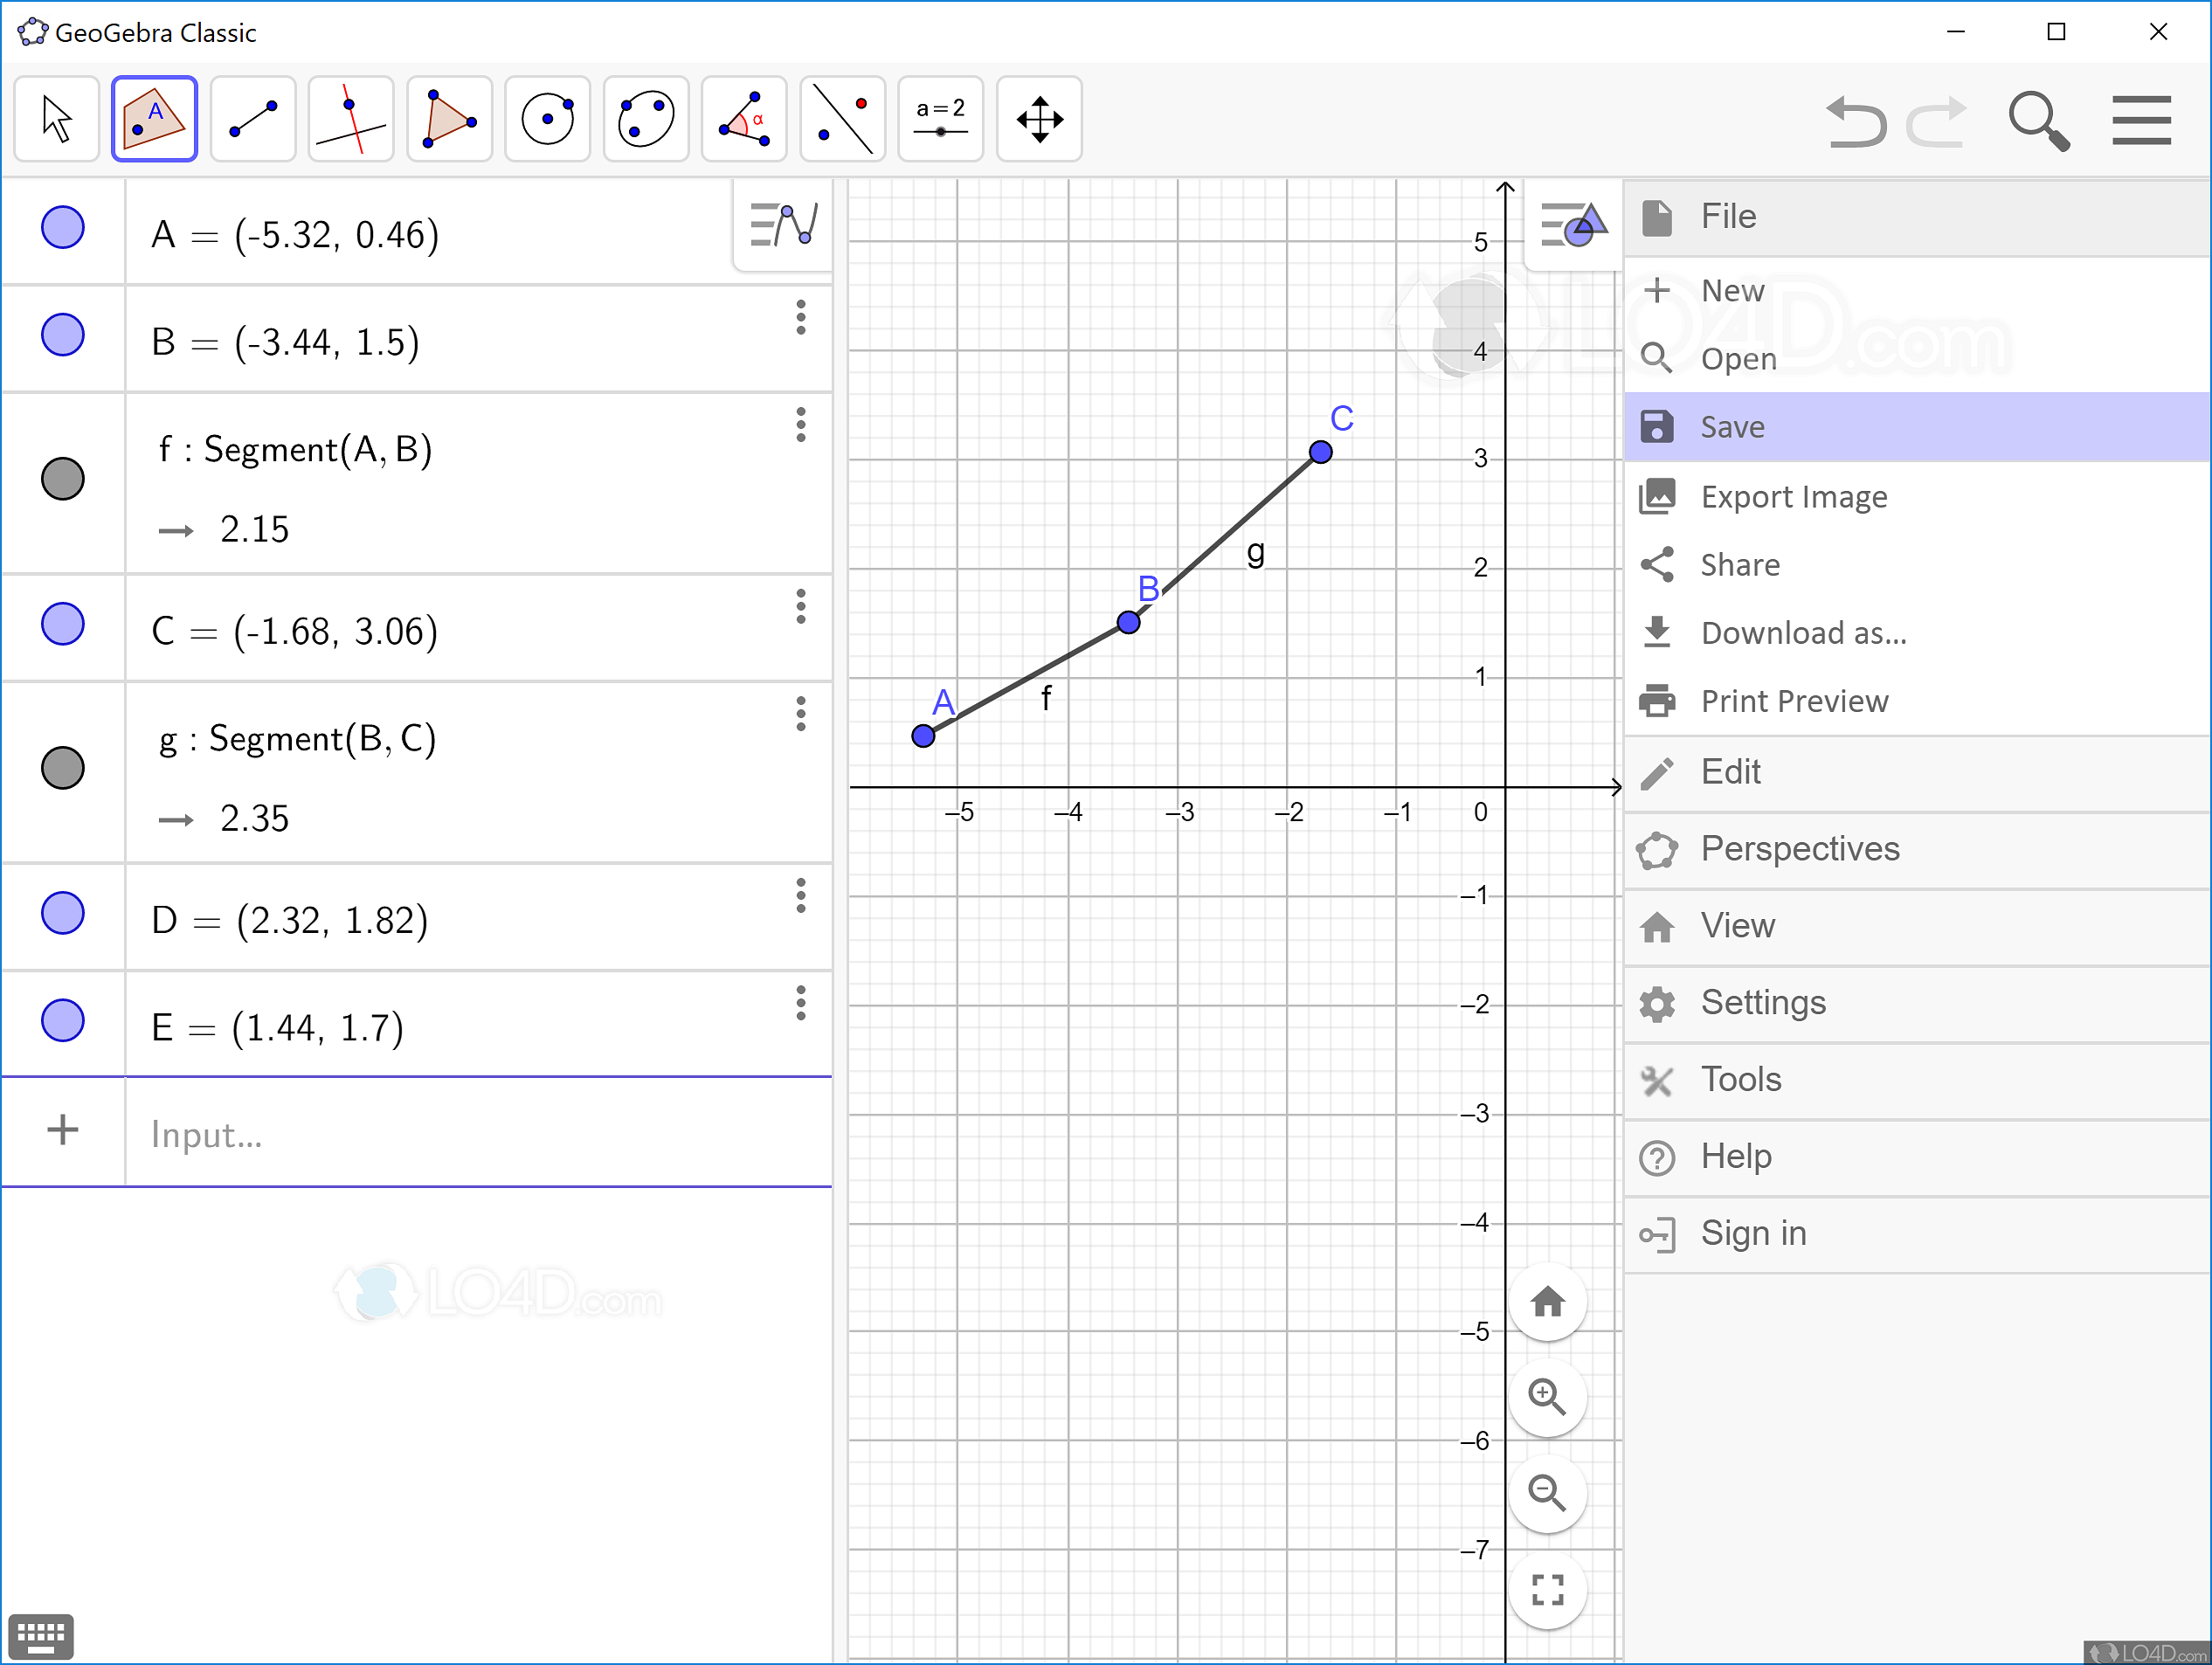 geogebra windows 7 64 bits